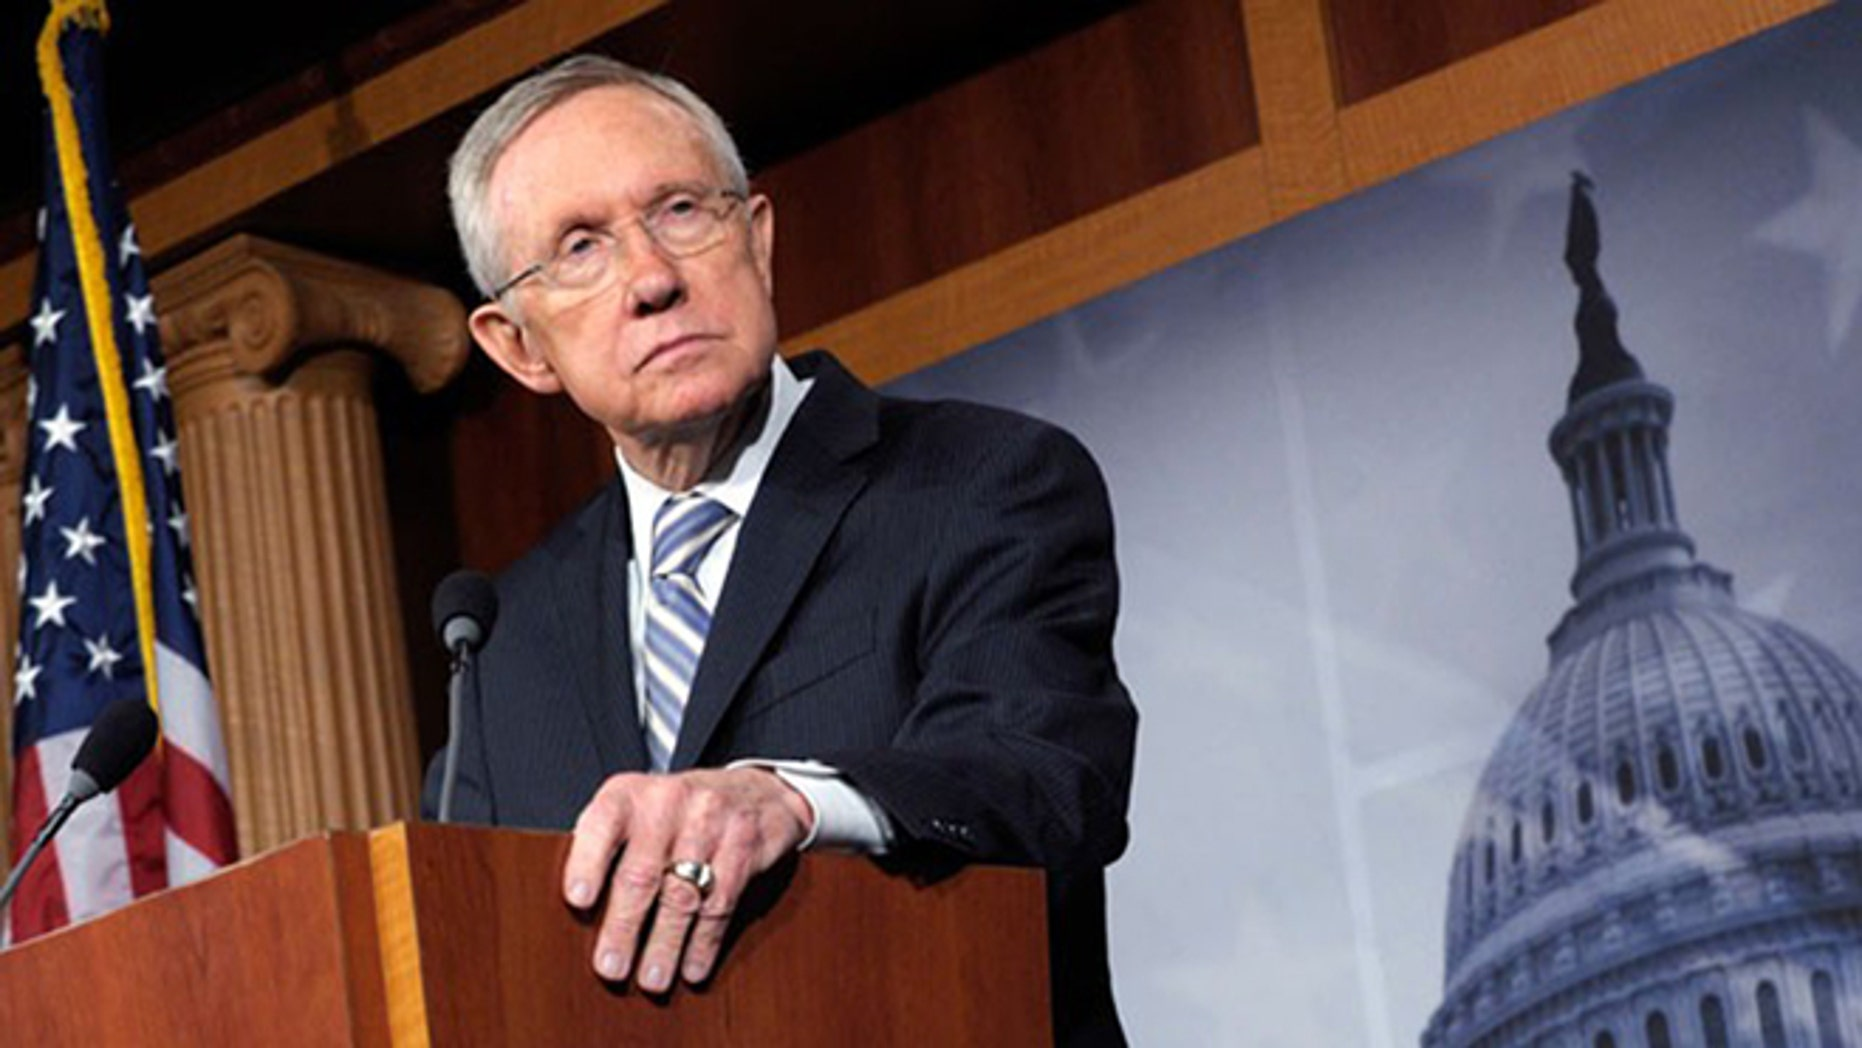 Senate Minority Leader Harry Reid, D-Nev., is shown.